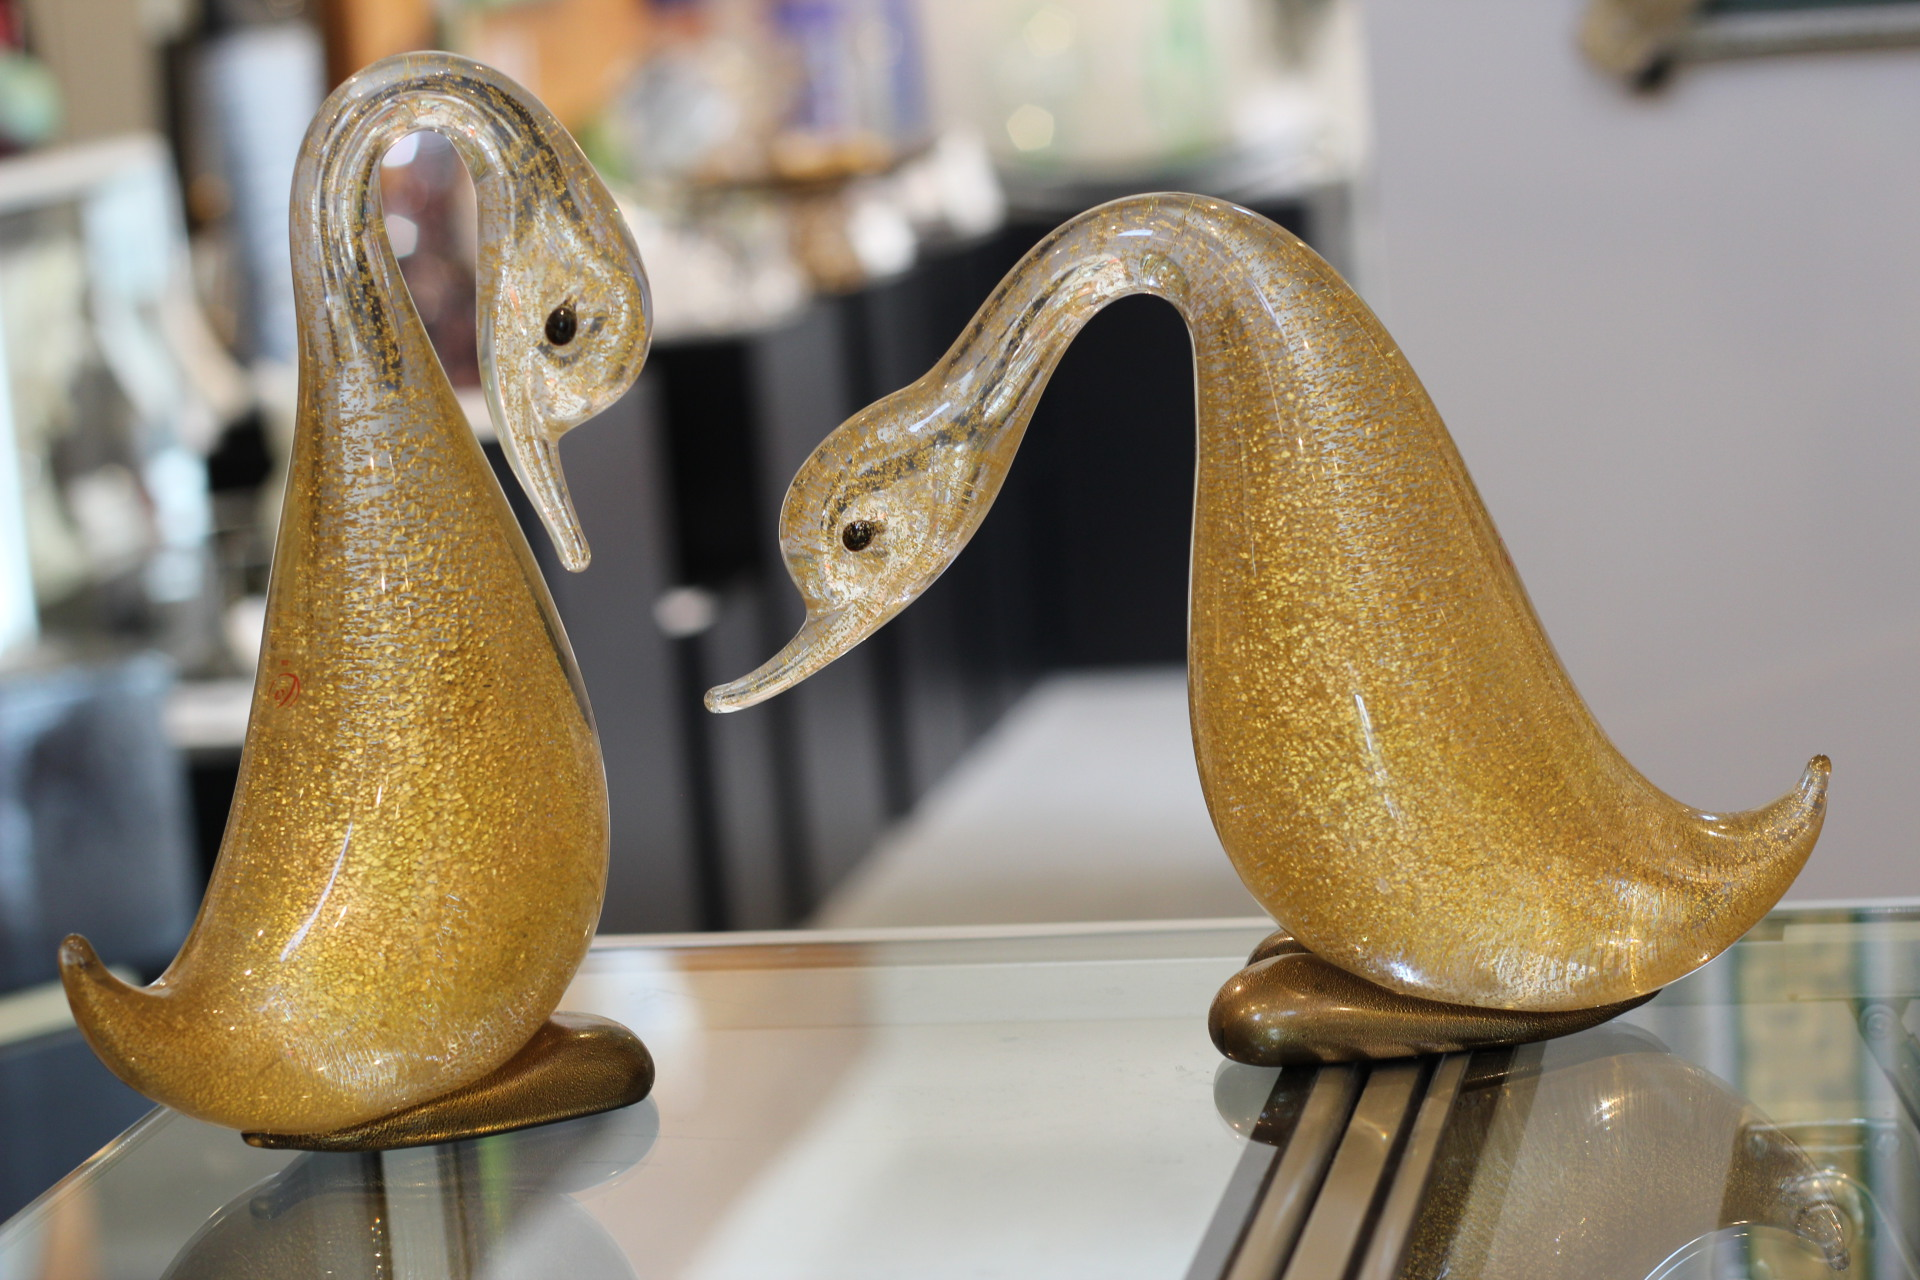 Gambaro Ducks